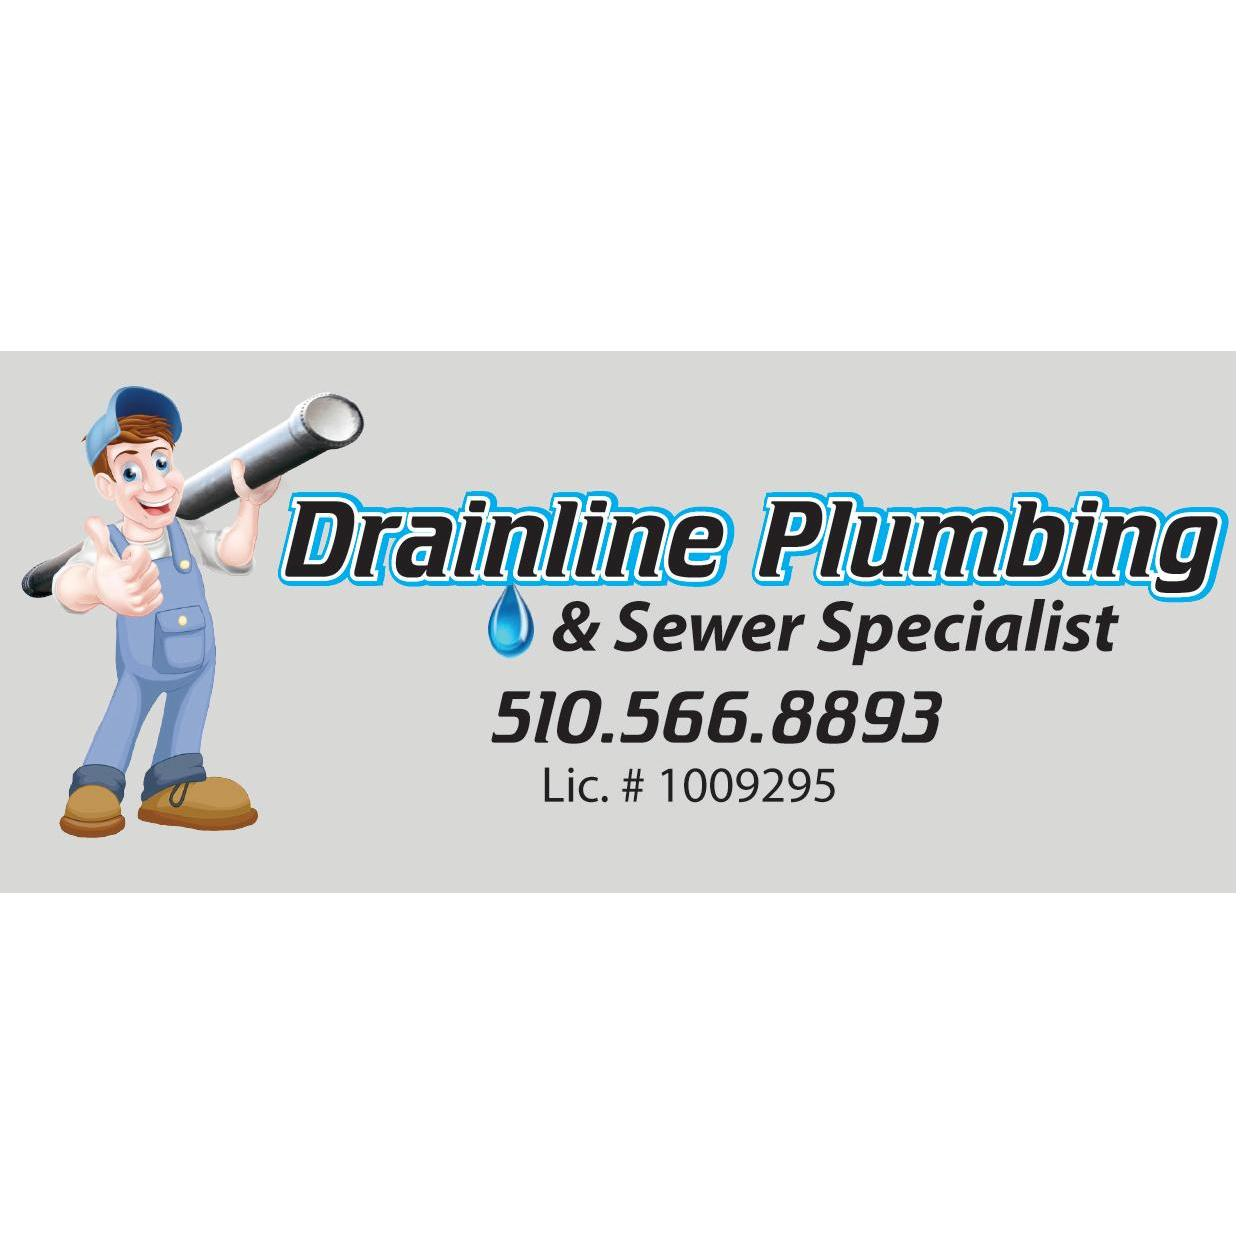 Trenchless Sewer Specialist